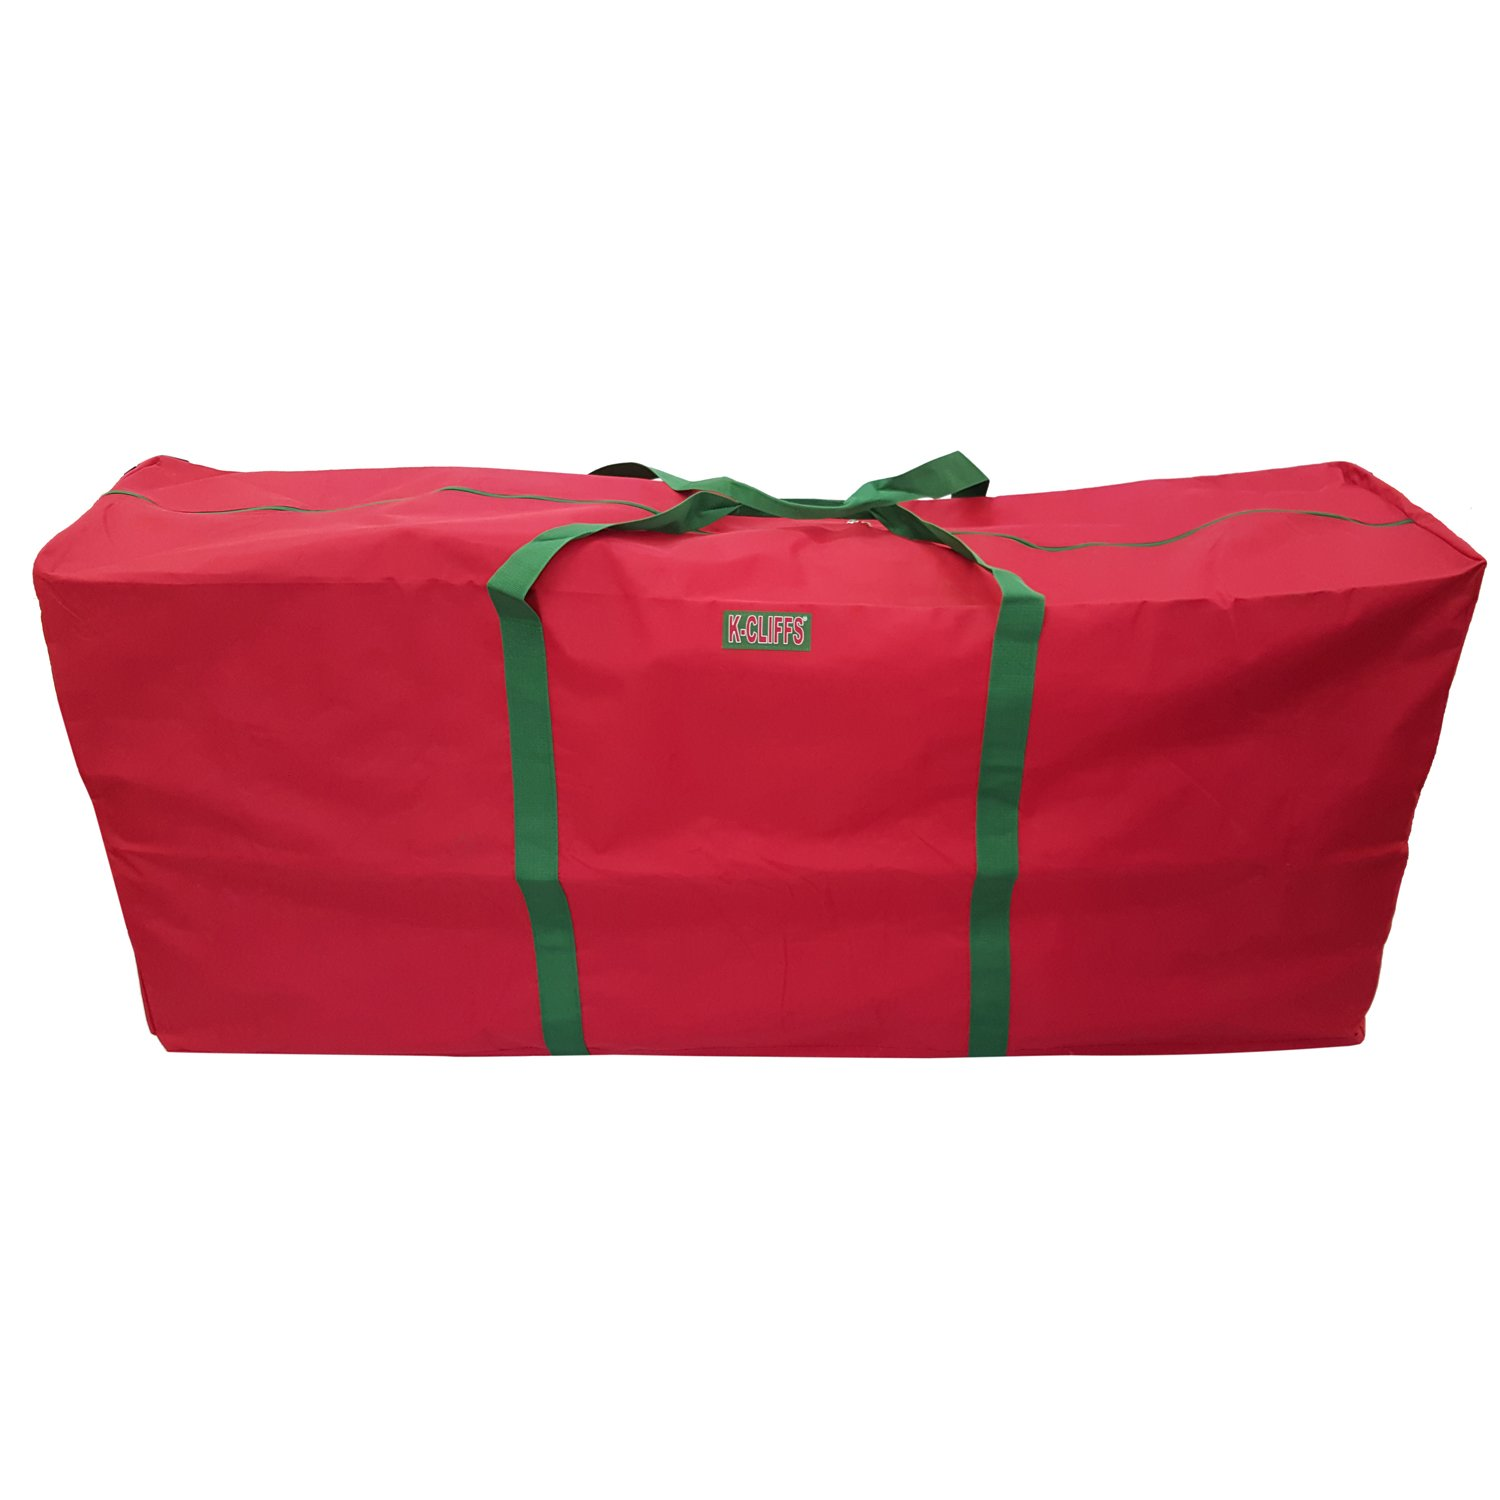 Heavy Duty Christmas Tree Storage Bag Fit upto 7 Foot Artificial Tree Holiday Red Extra Large 48